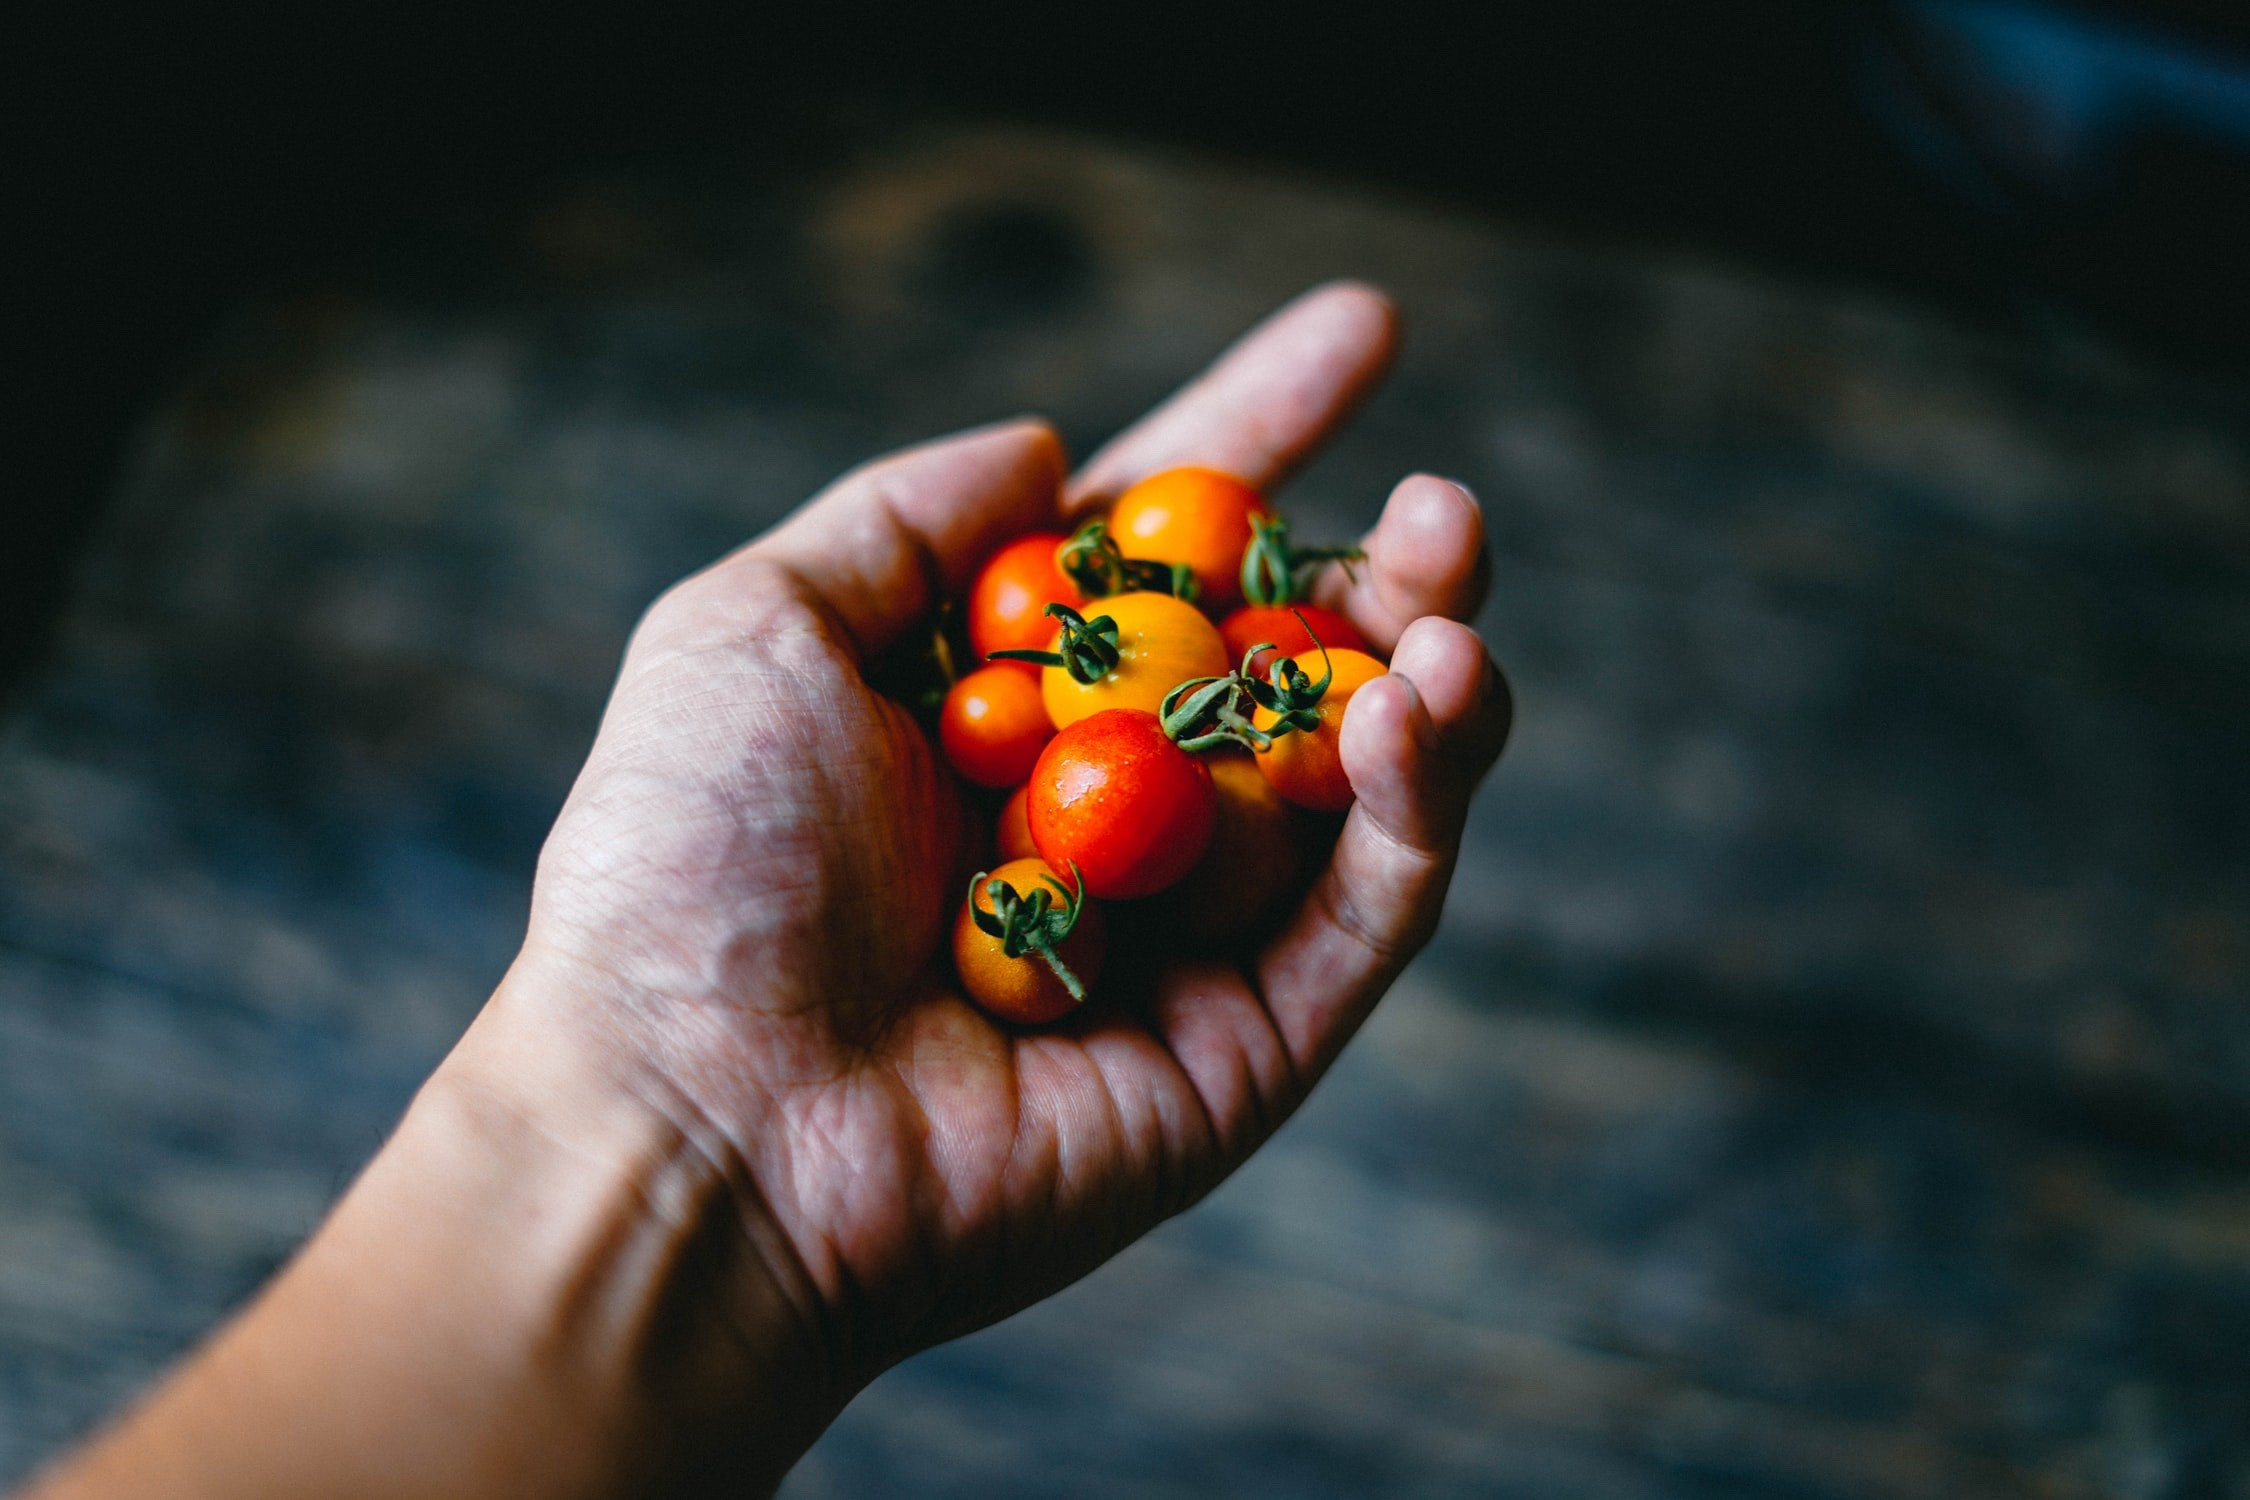 A hand holding about eight red and orange cherry tomatoes.